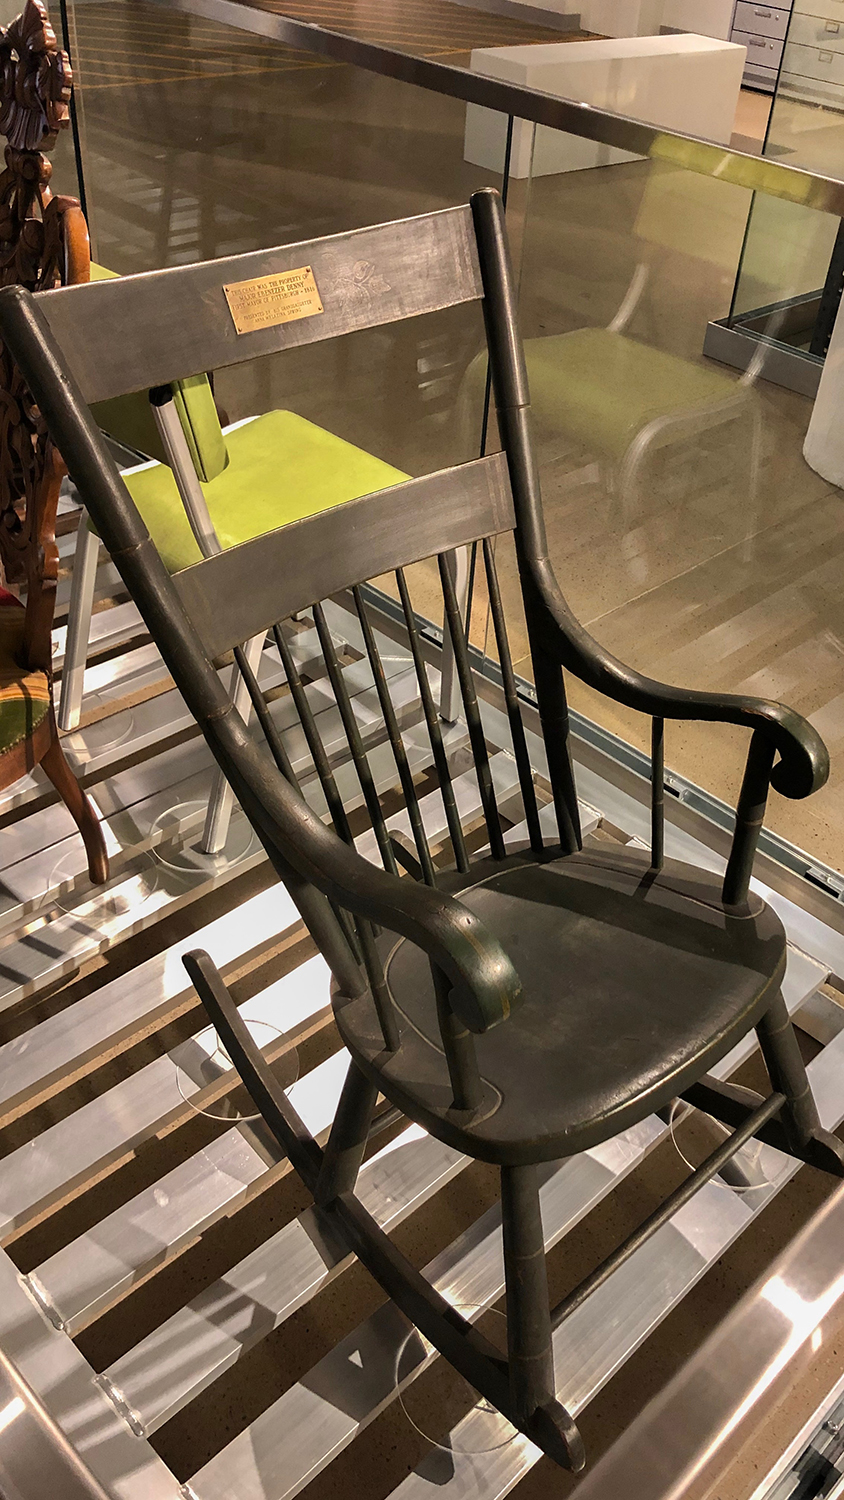 Mayor Ebenezer Denny's rocking chair, on display in Visible Storage.